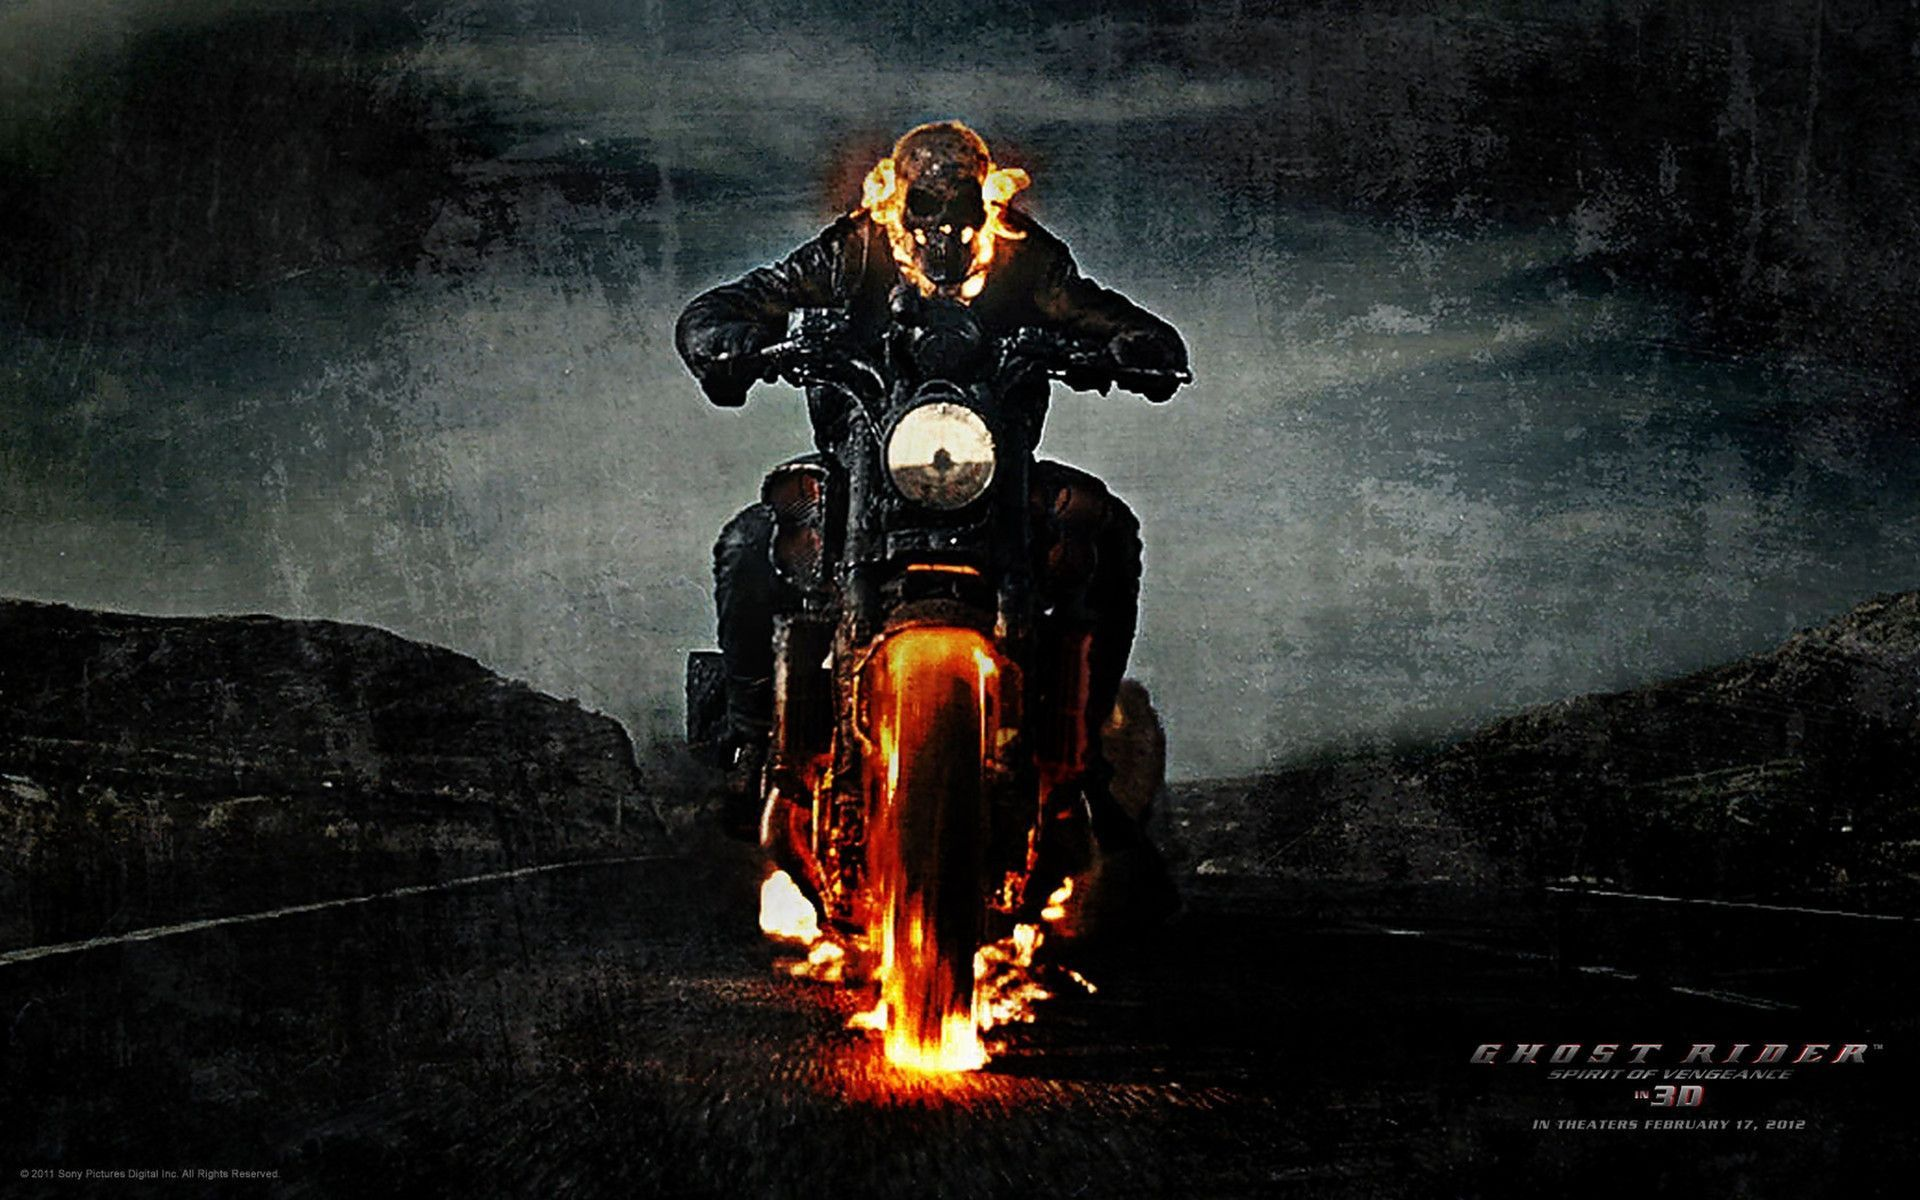 4K Ghost Rider Wallpapers - Top Free 4K Ghost Rider Backgrounds